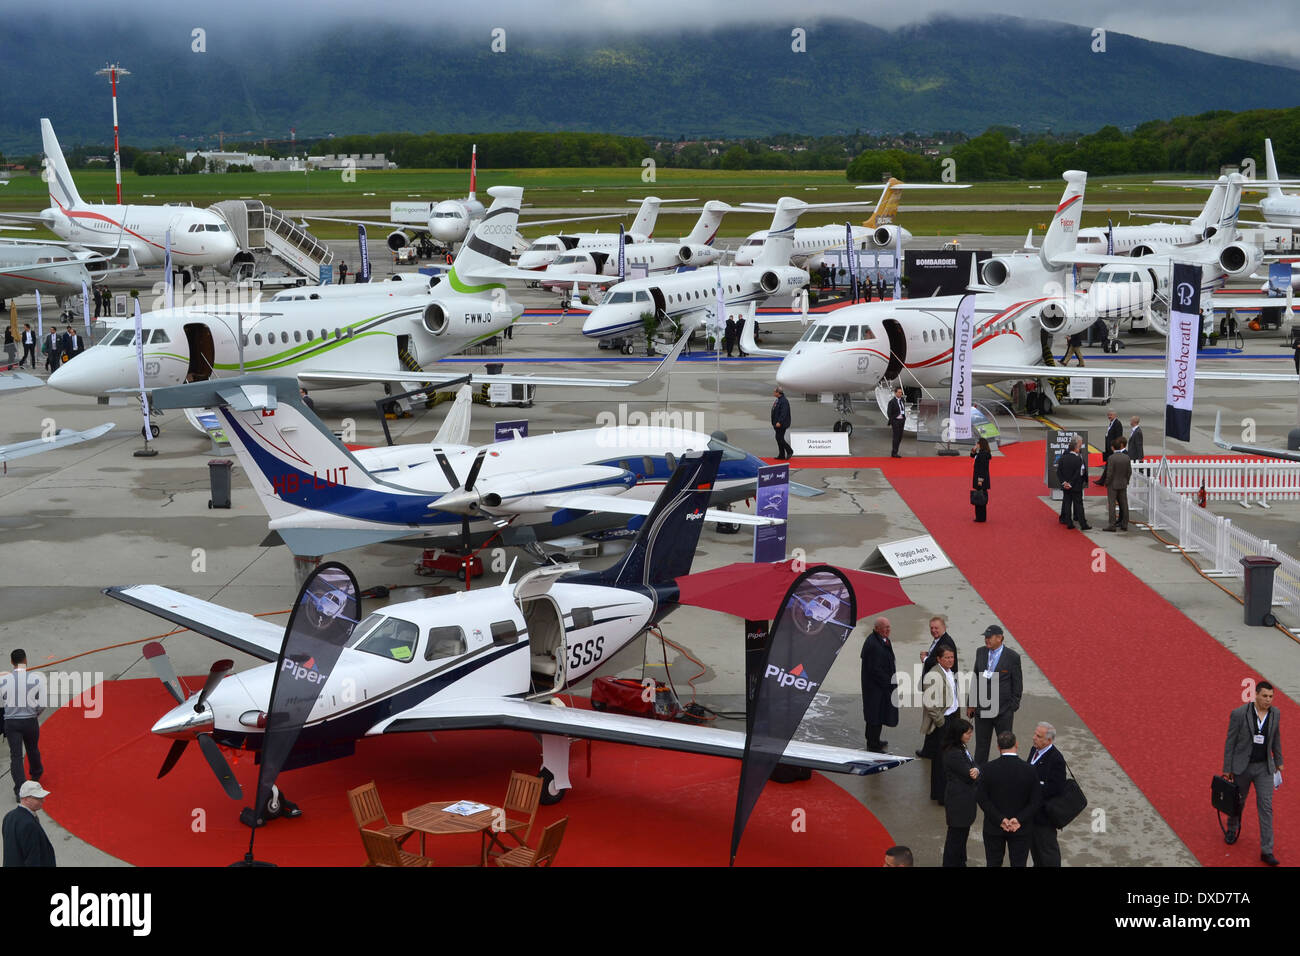 Aircraft on the static park at the 2013 Ebace Expo in Geneva, Switzerland. Stock Photo